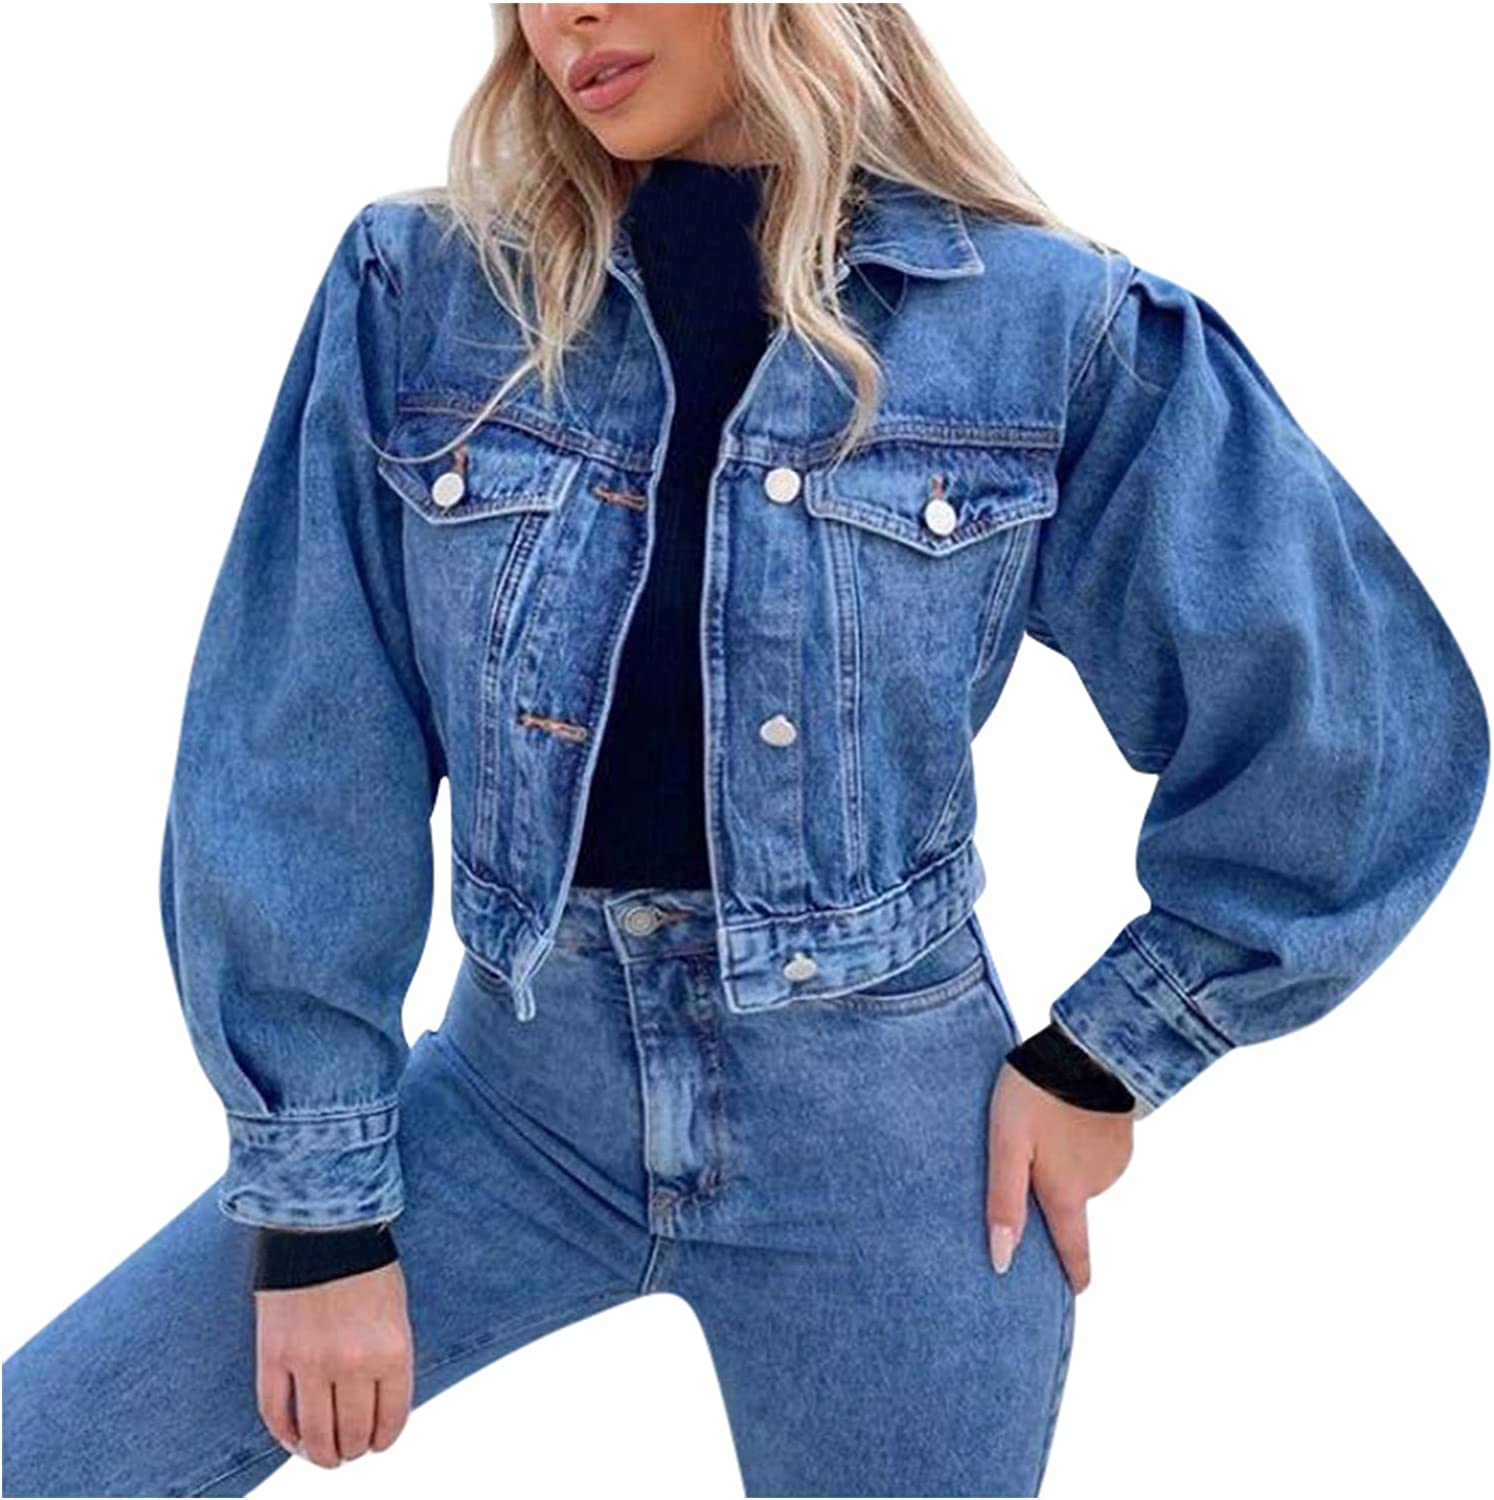 Women's Breasted Blue Denim Cardigan Max 87% Sales for sale OFF Loose Style Jacket